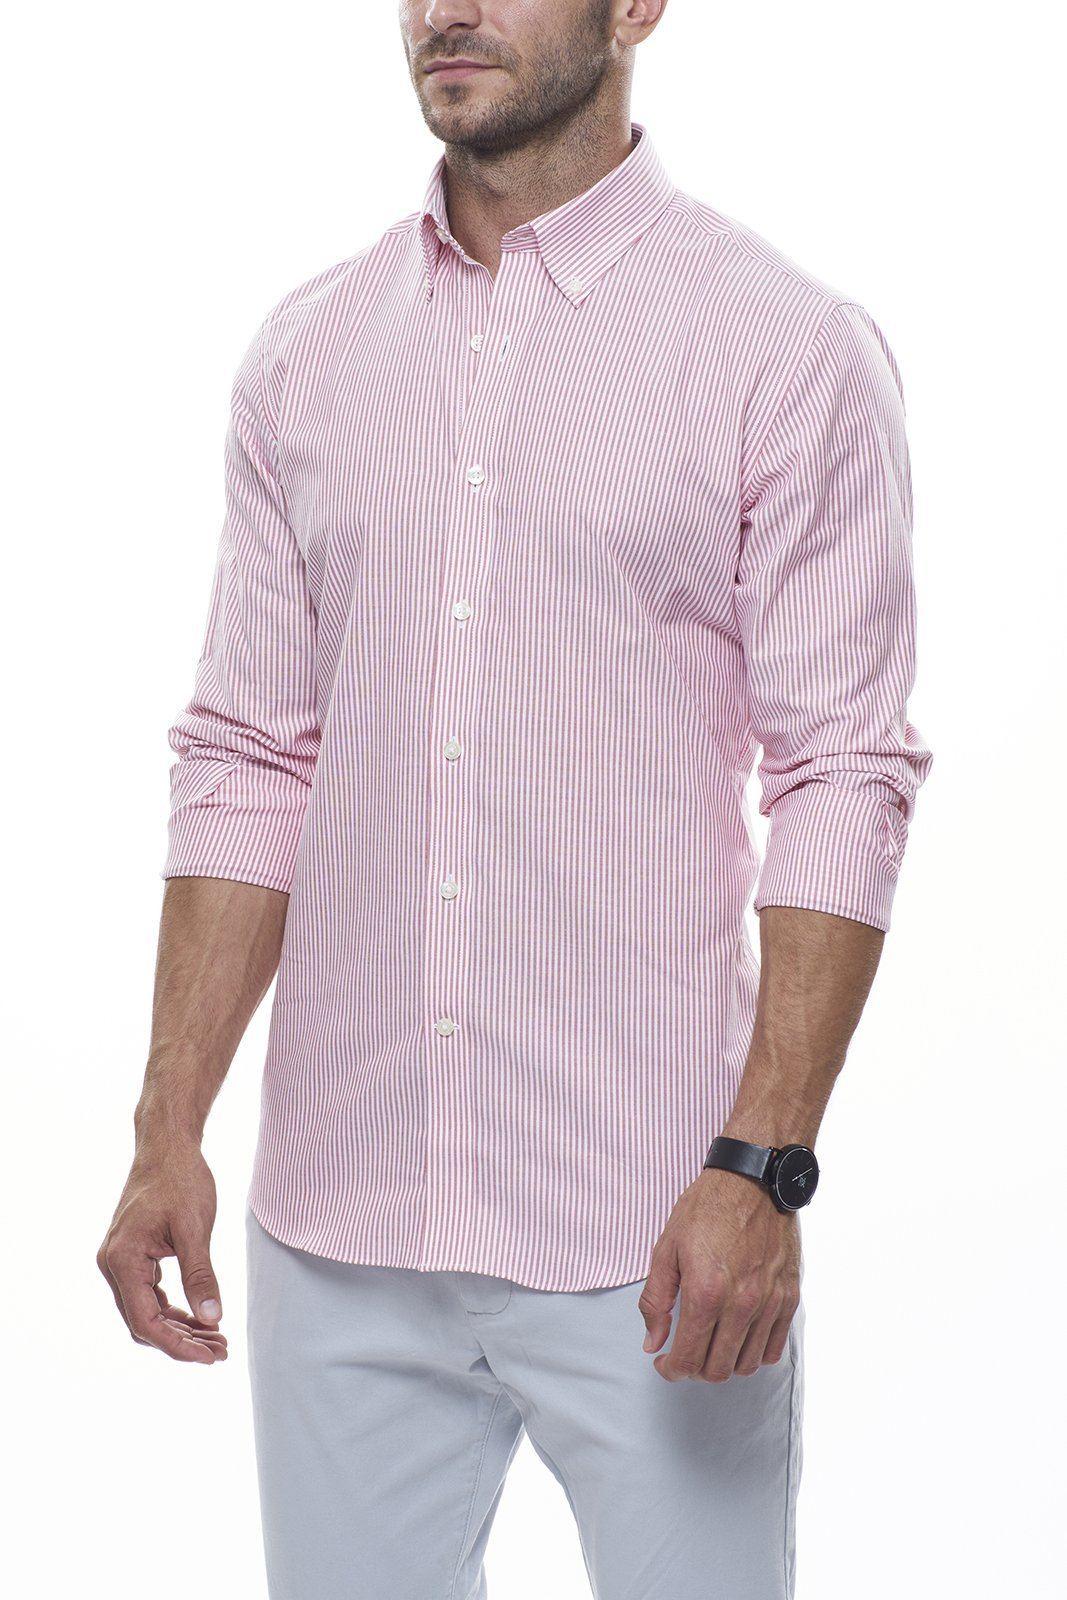 Brick Striped Oxford: Semi-Spread Collar, Barrel Cuff